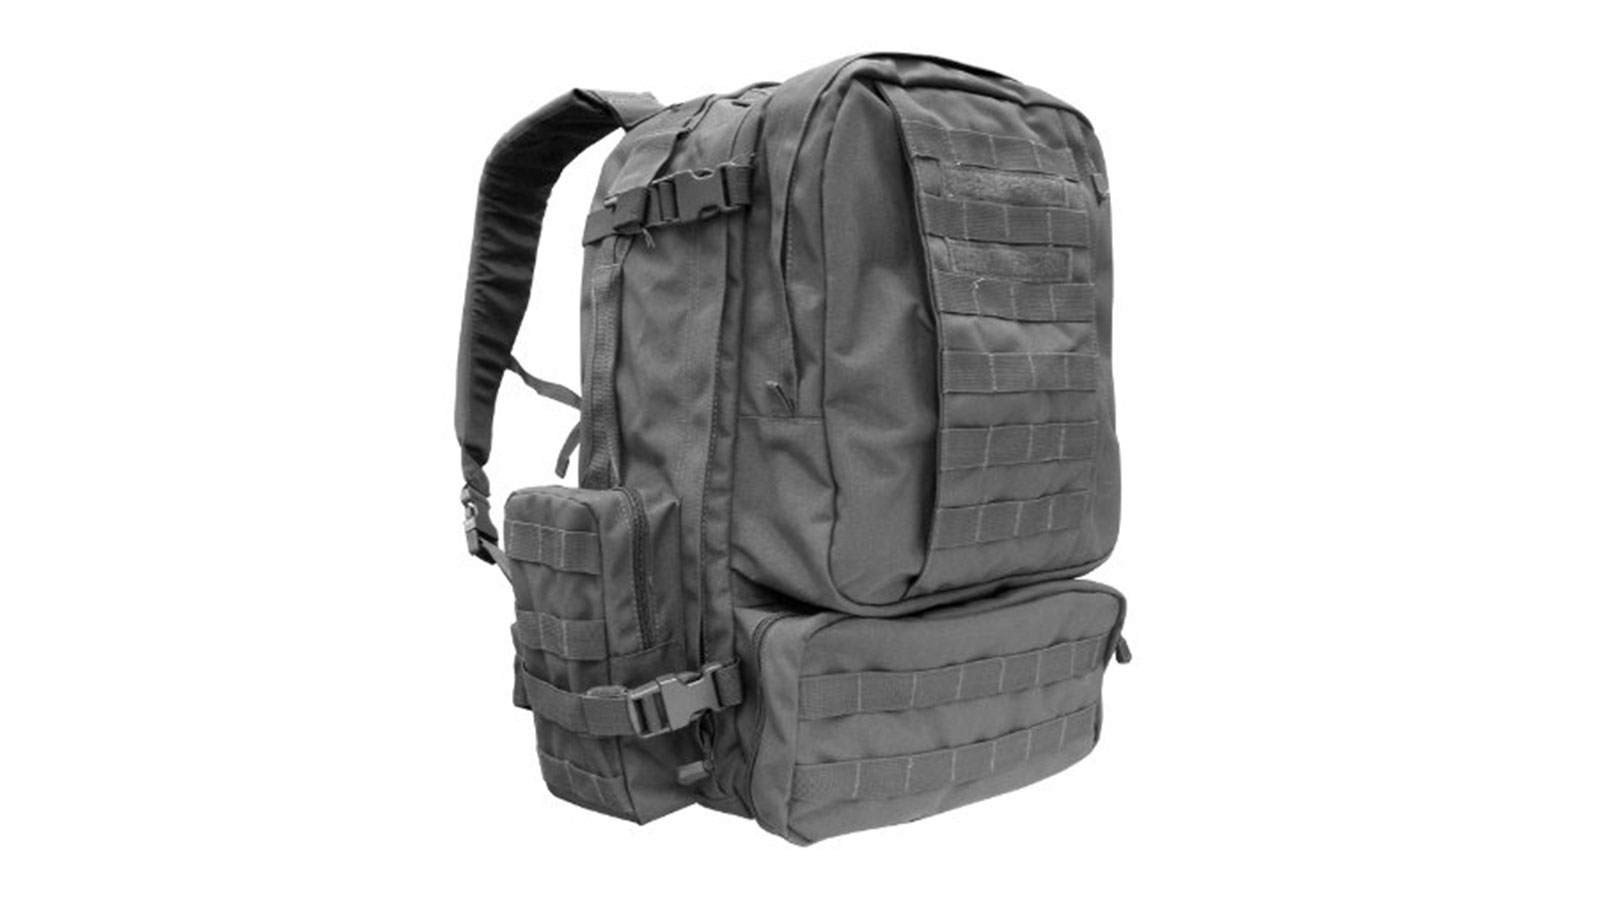 Condor 3 Day Assault Tactical Backpack | best tactical backpacks